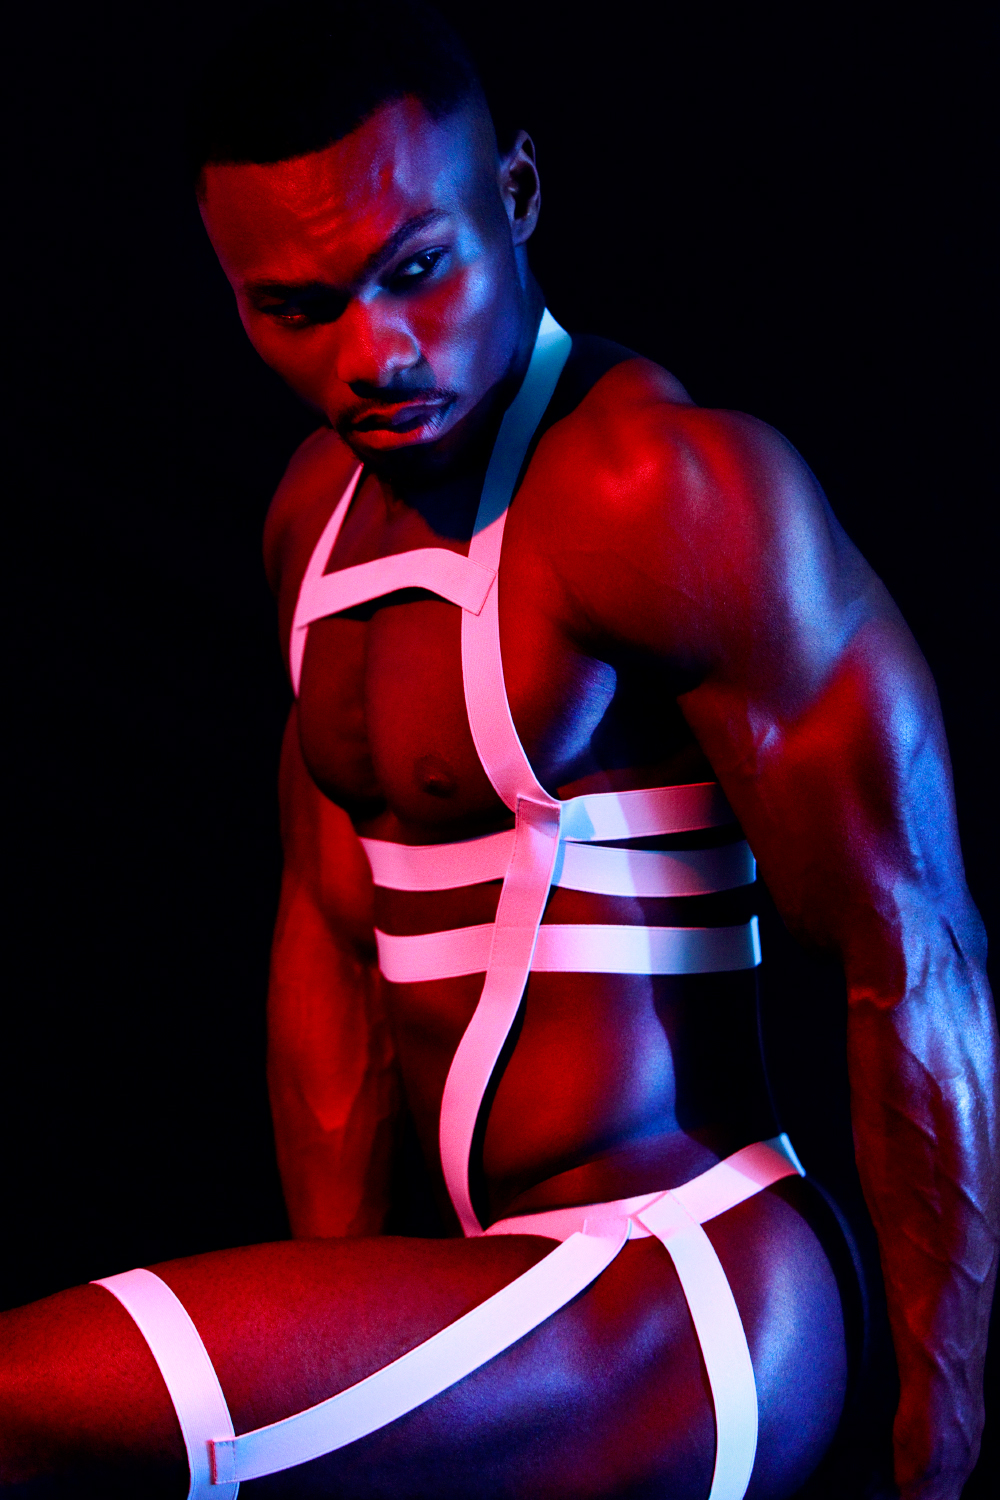 exsl_daniel_bodyharness